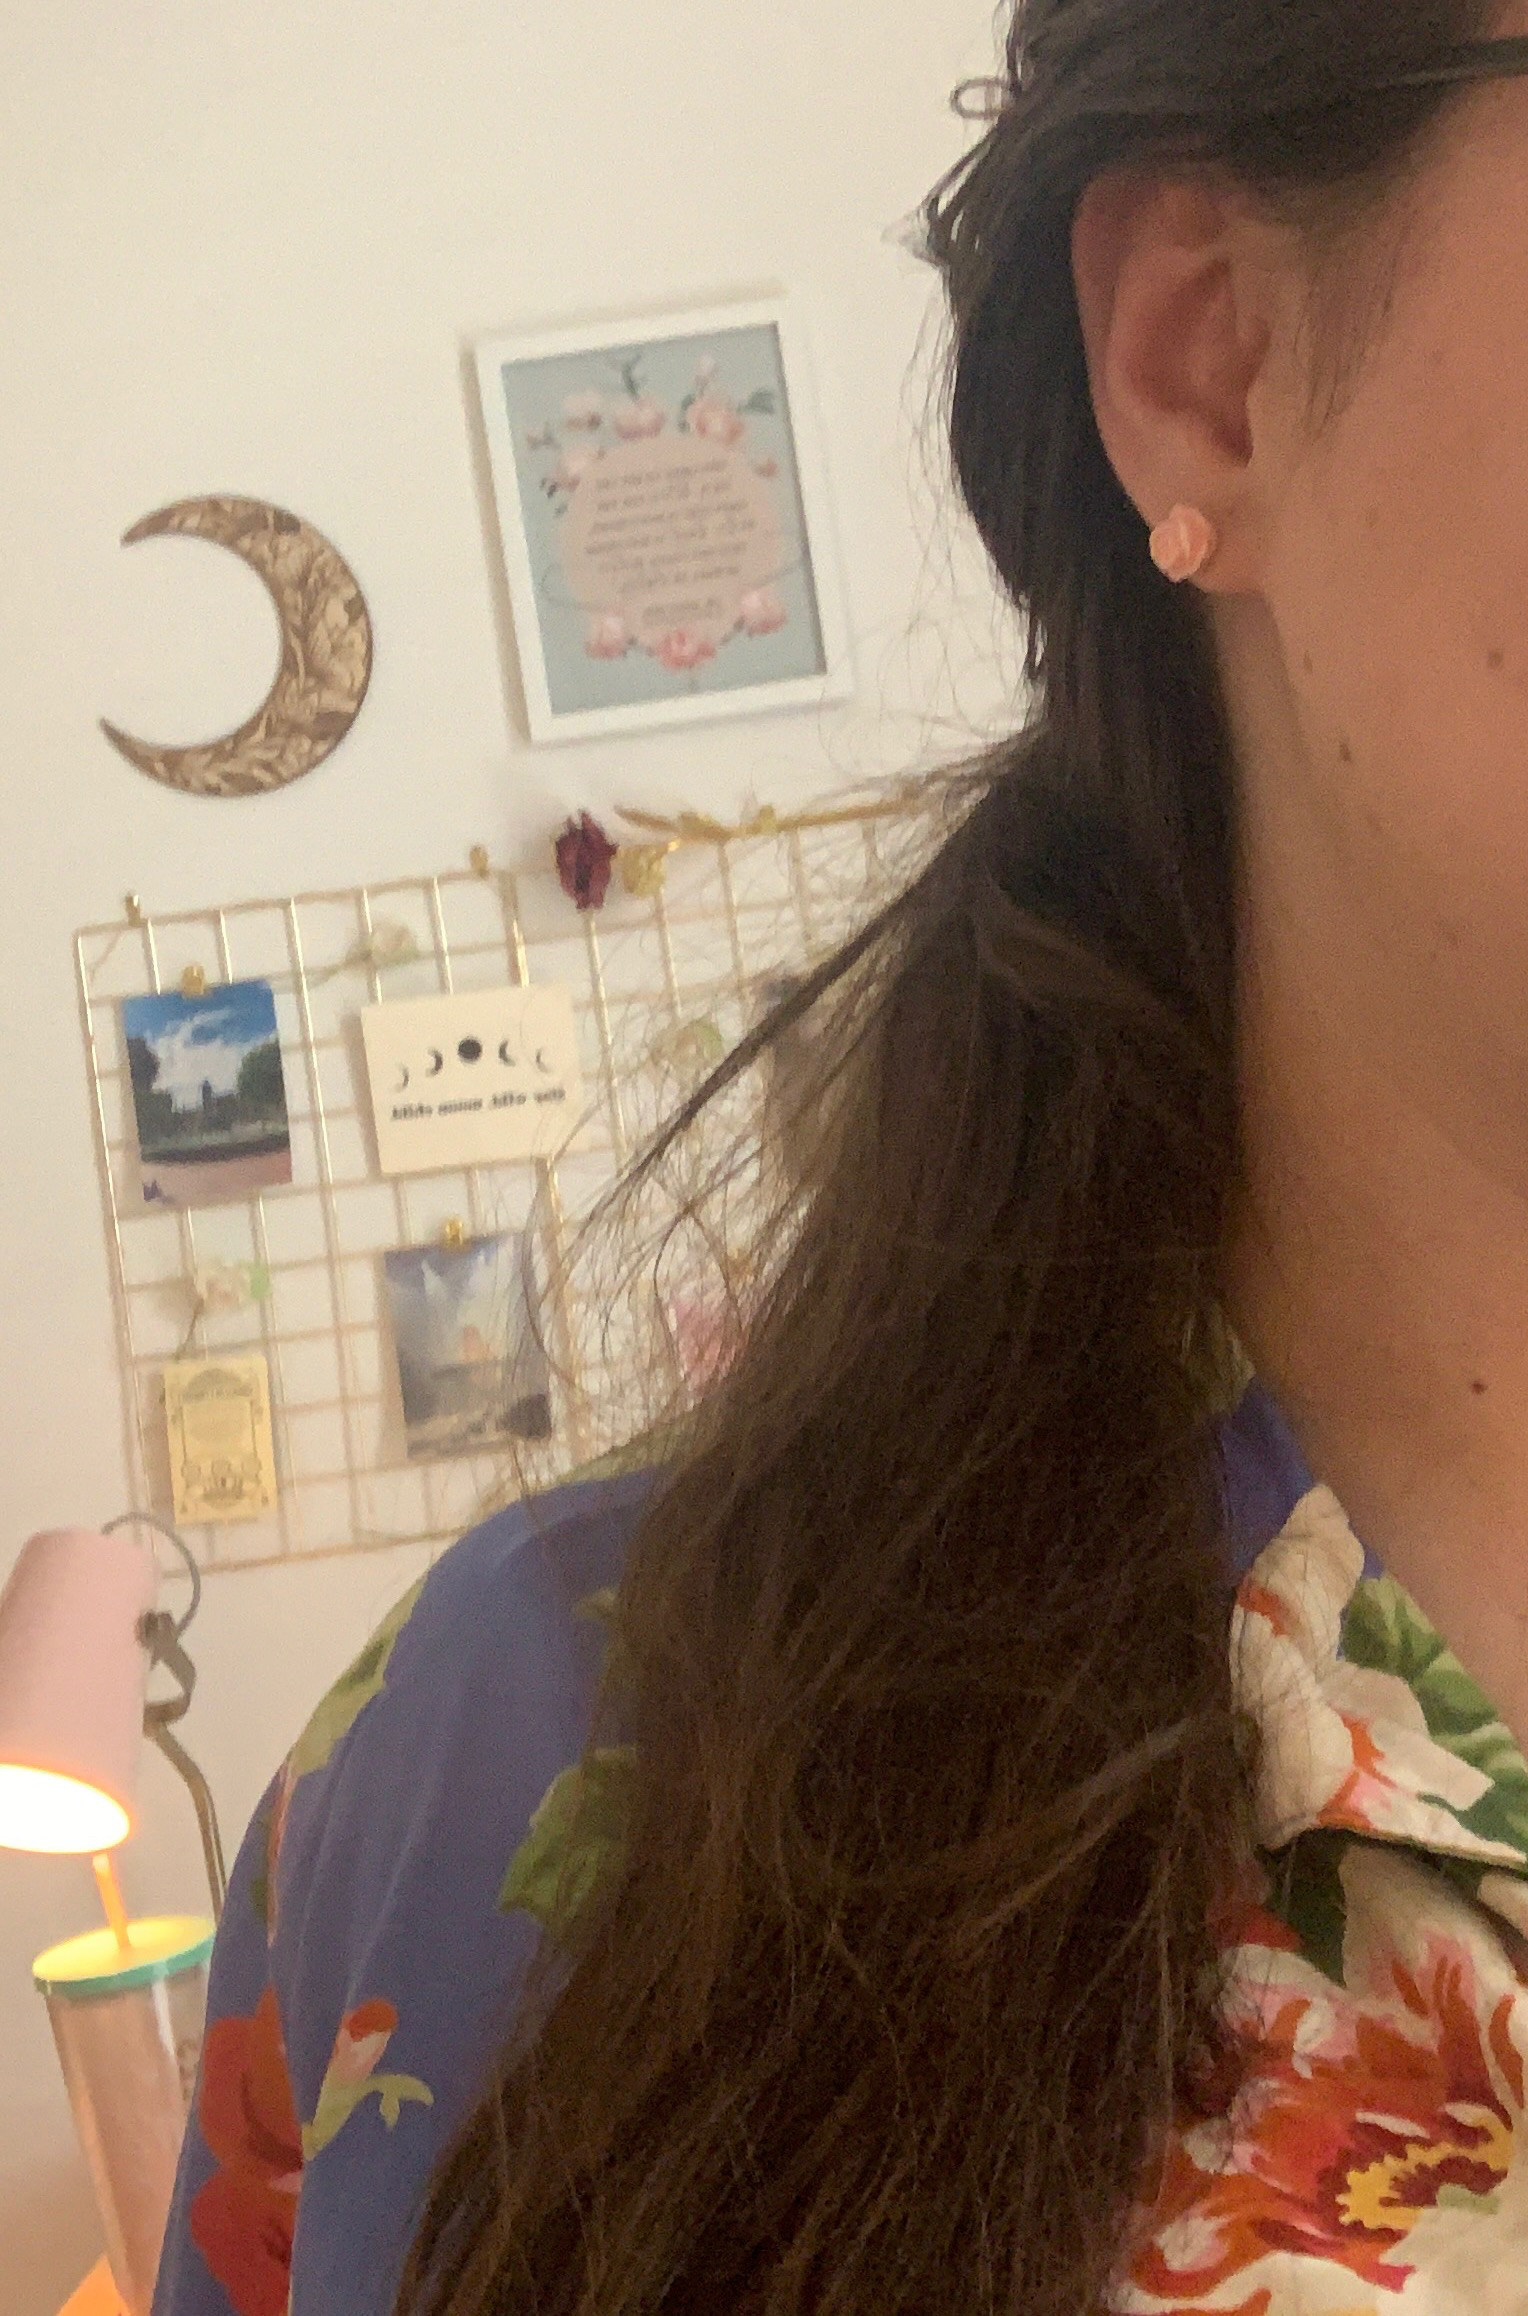 my hair fell back into a side ponytail